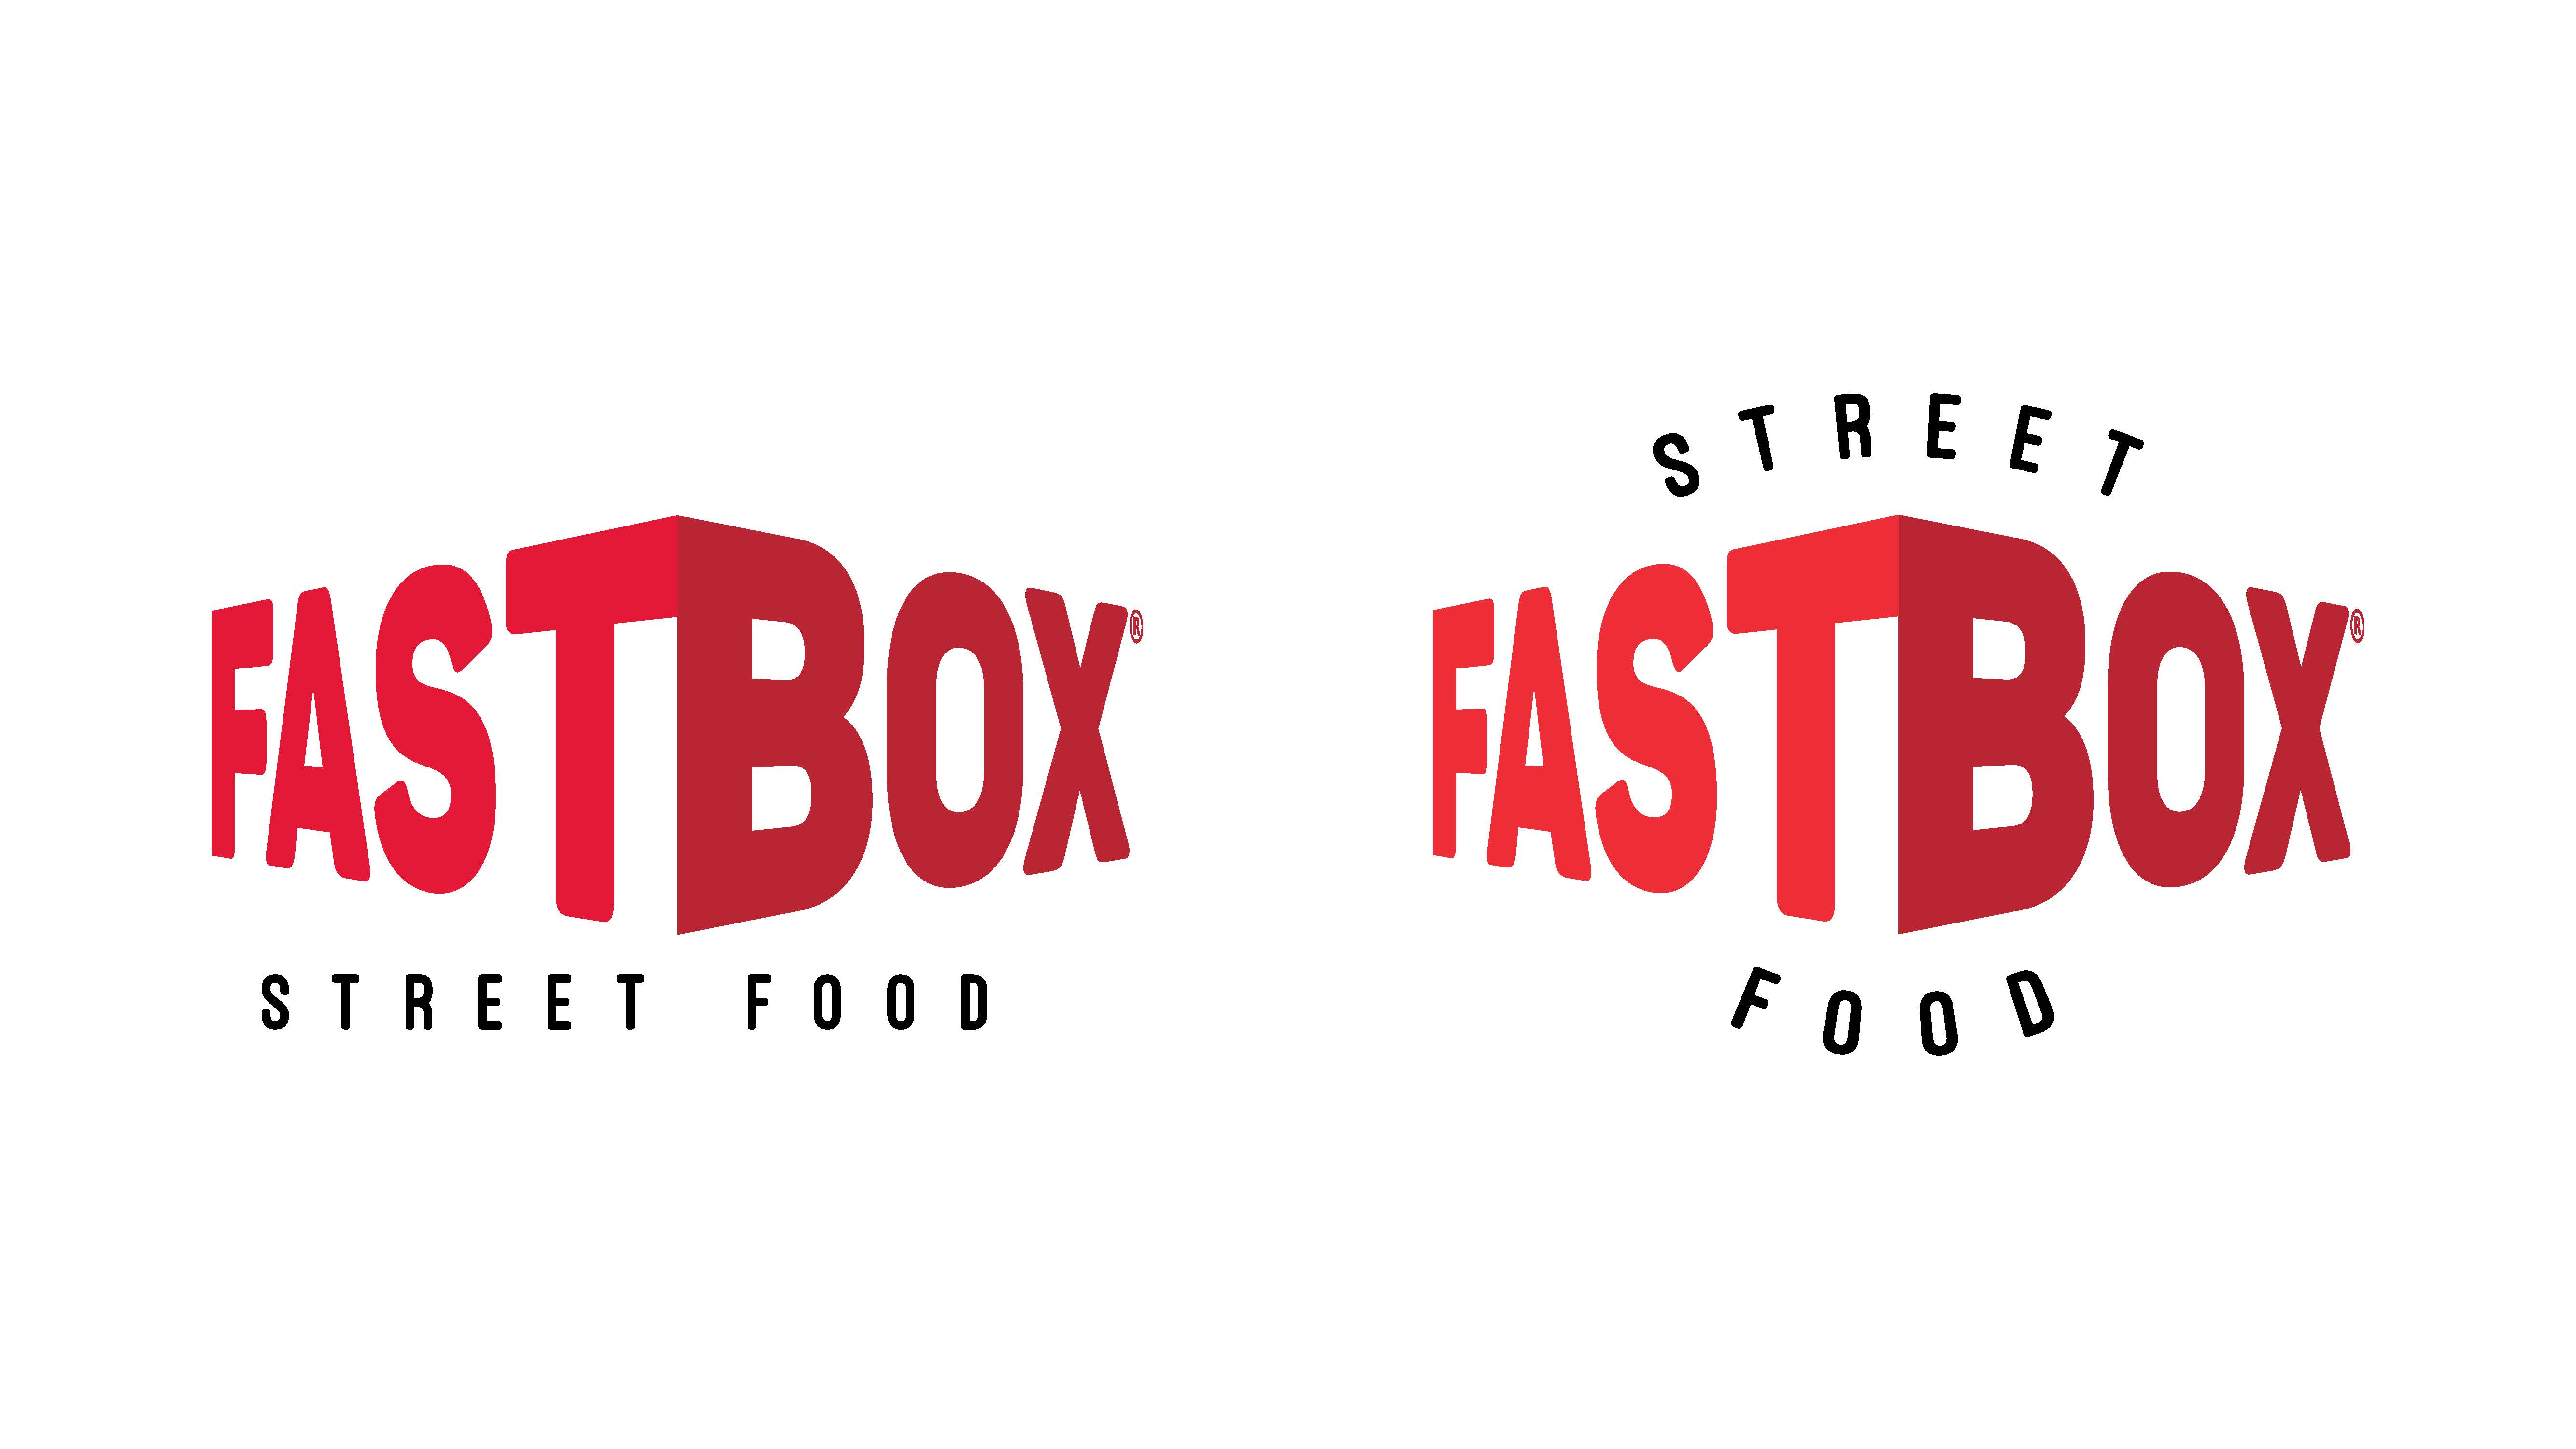 FastBox - the visual identity of a fast food restaurant